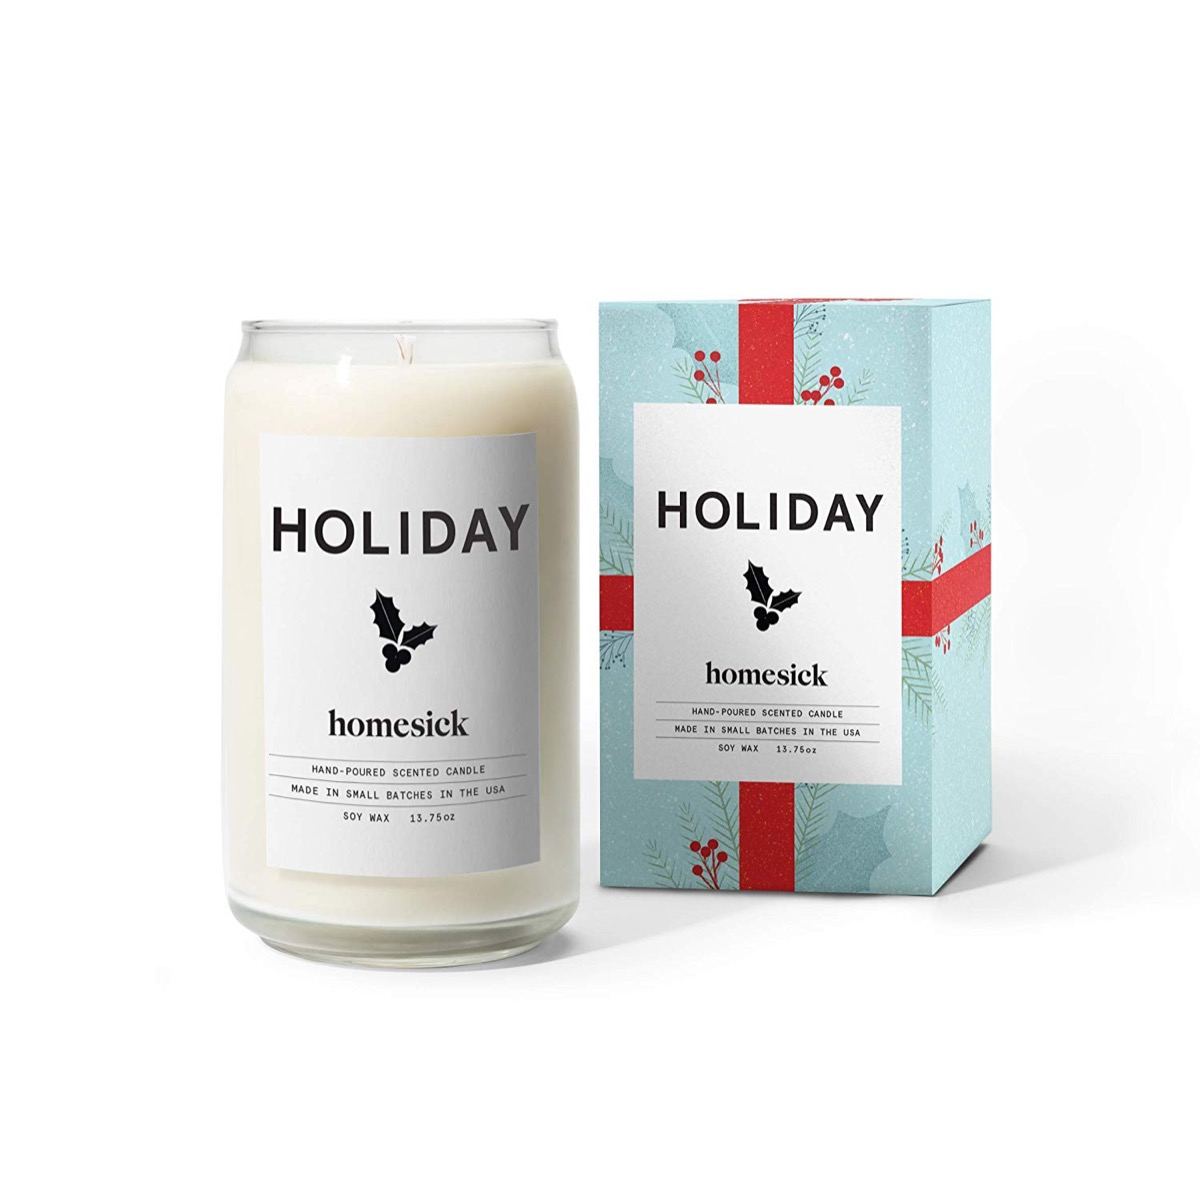 holiday homesick candle in glass jar